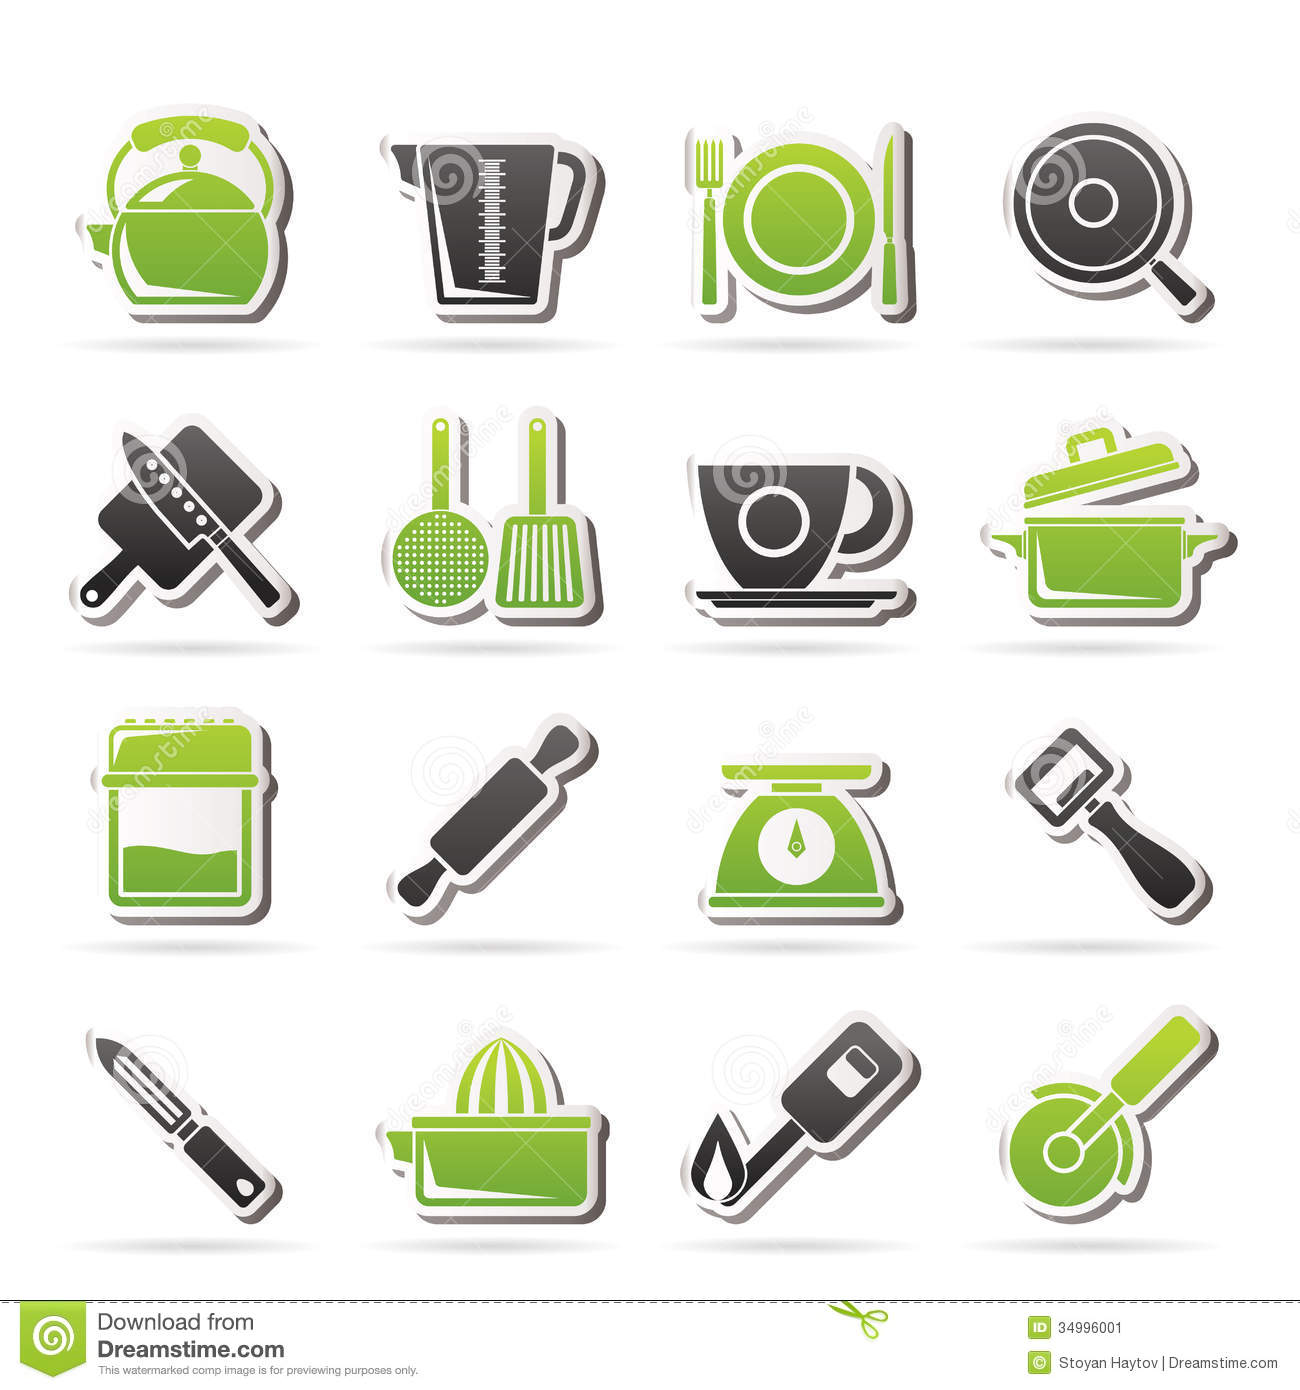 Kitchen Gadget Kitchen Gadgets And Equipment Icons Royalty Free Stock Photography